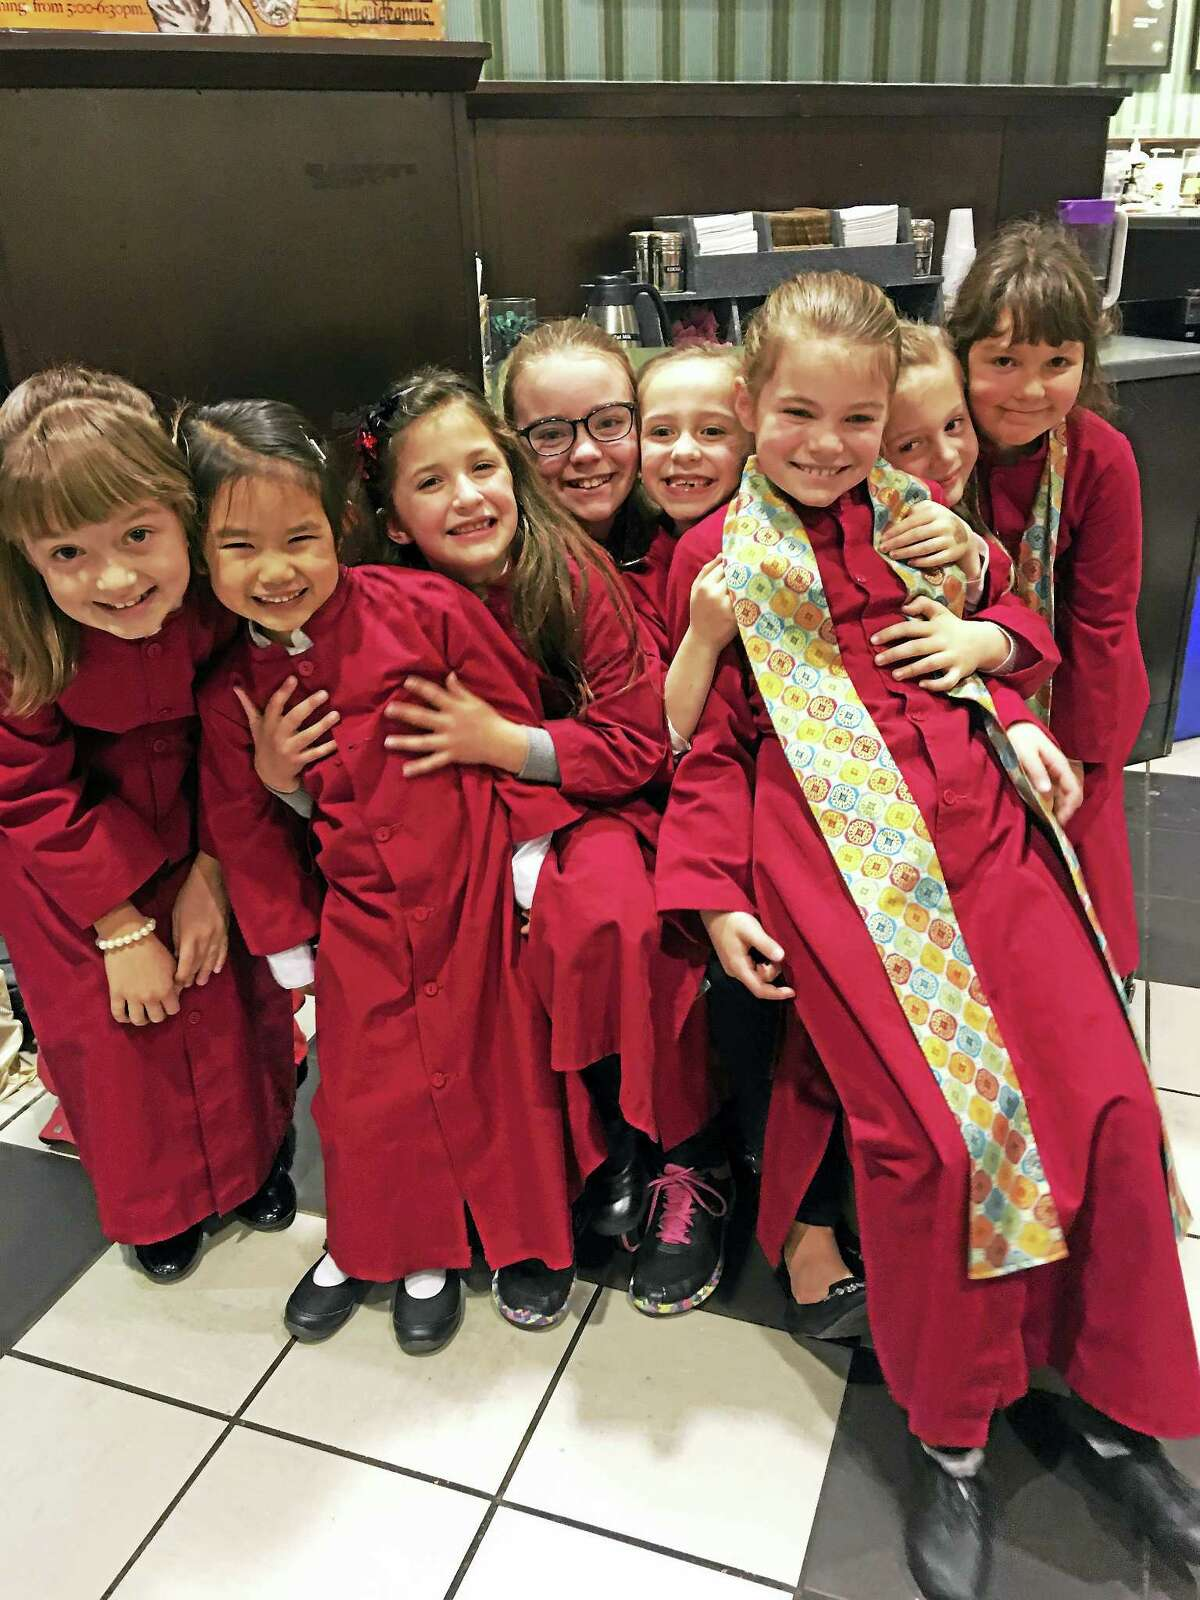 Members of Chorus Angelicus will join the Berkshire Children's Chorus and Gaudeamus adult chorus at The Music Shed in Norfolk on June 11 for Chasm: The Splendor of Choral Music with Percussion, on Sunday, June 11.